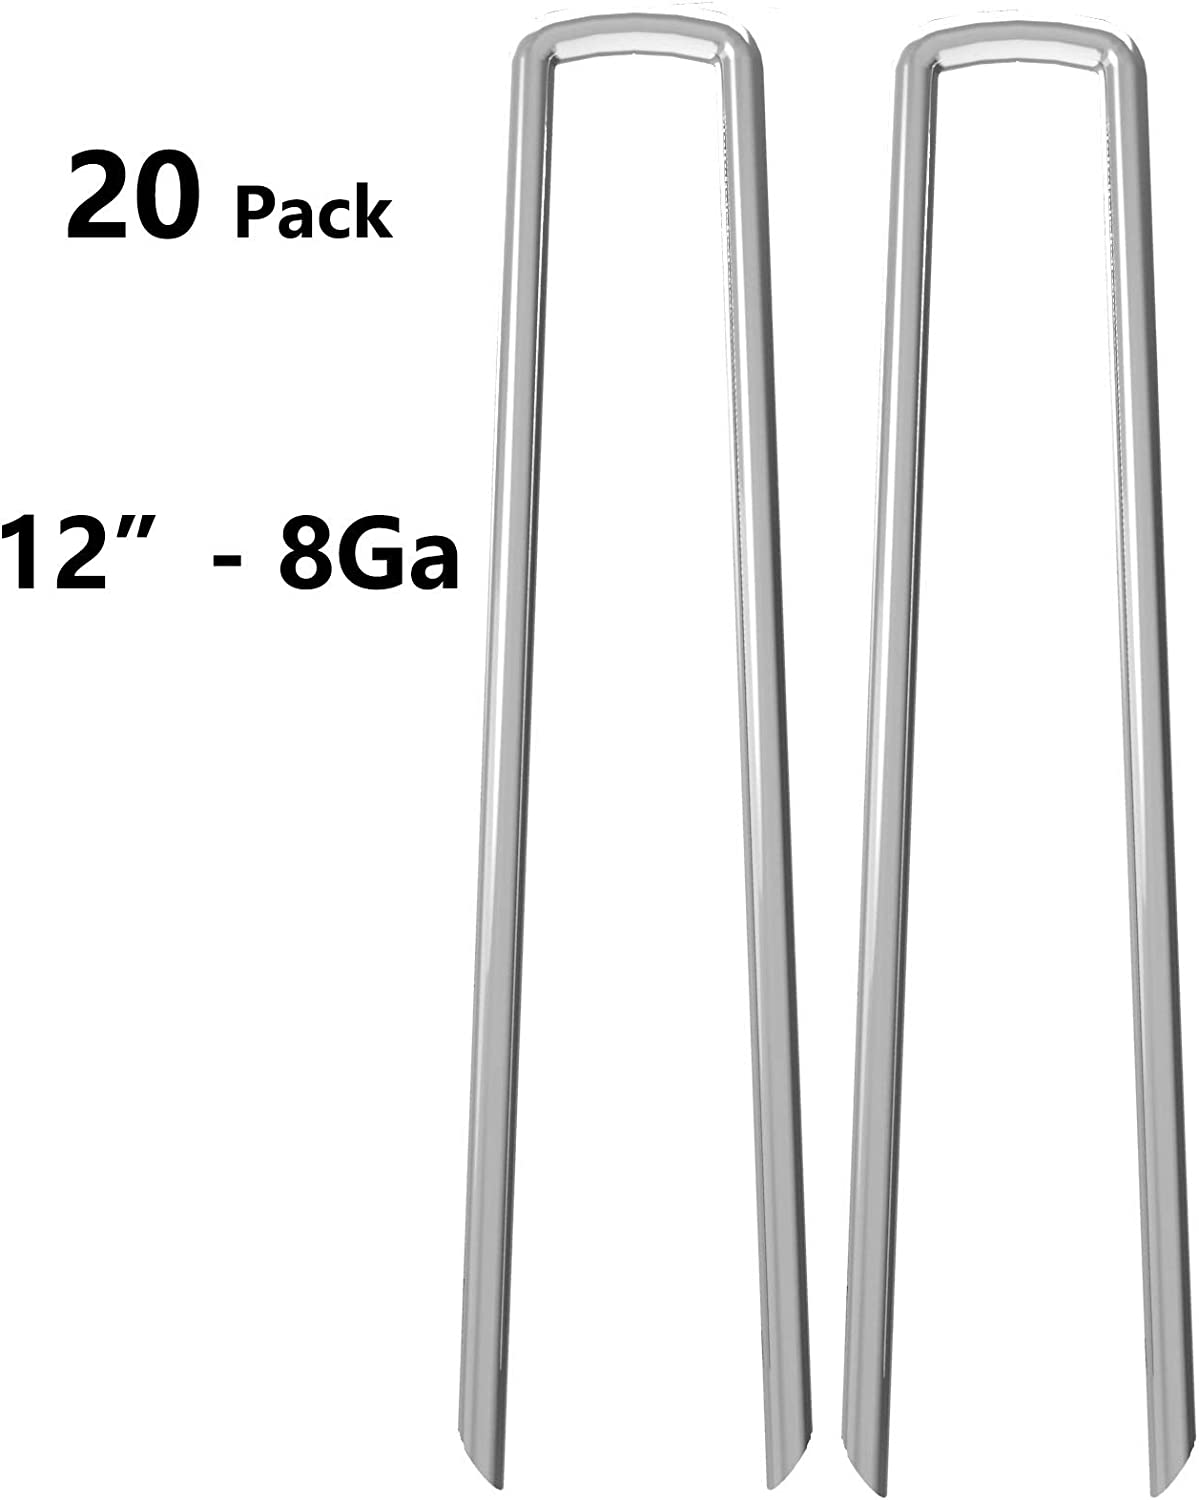 Stainless Steel 2171BC Eye and Eye Turnbuckle National Hardware N221-820 100 Pack 3//16in x 5.5in